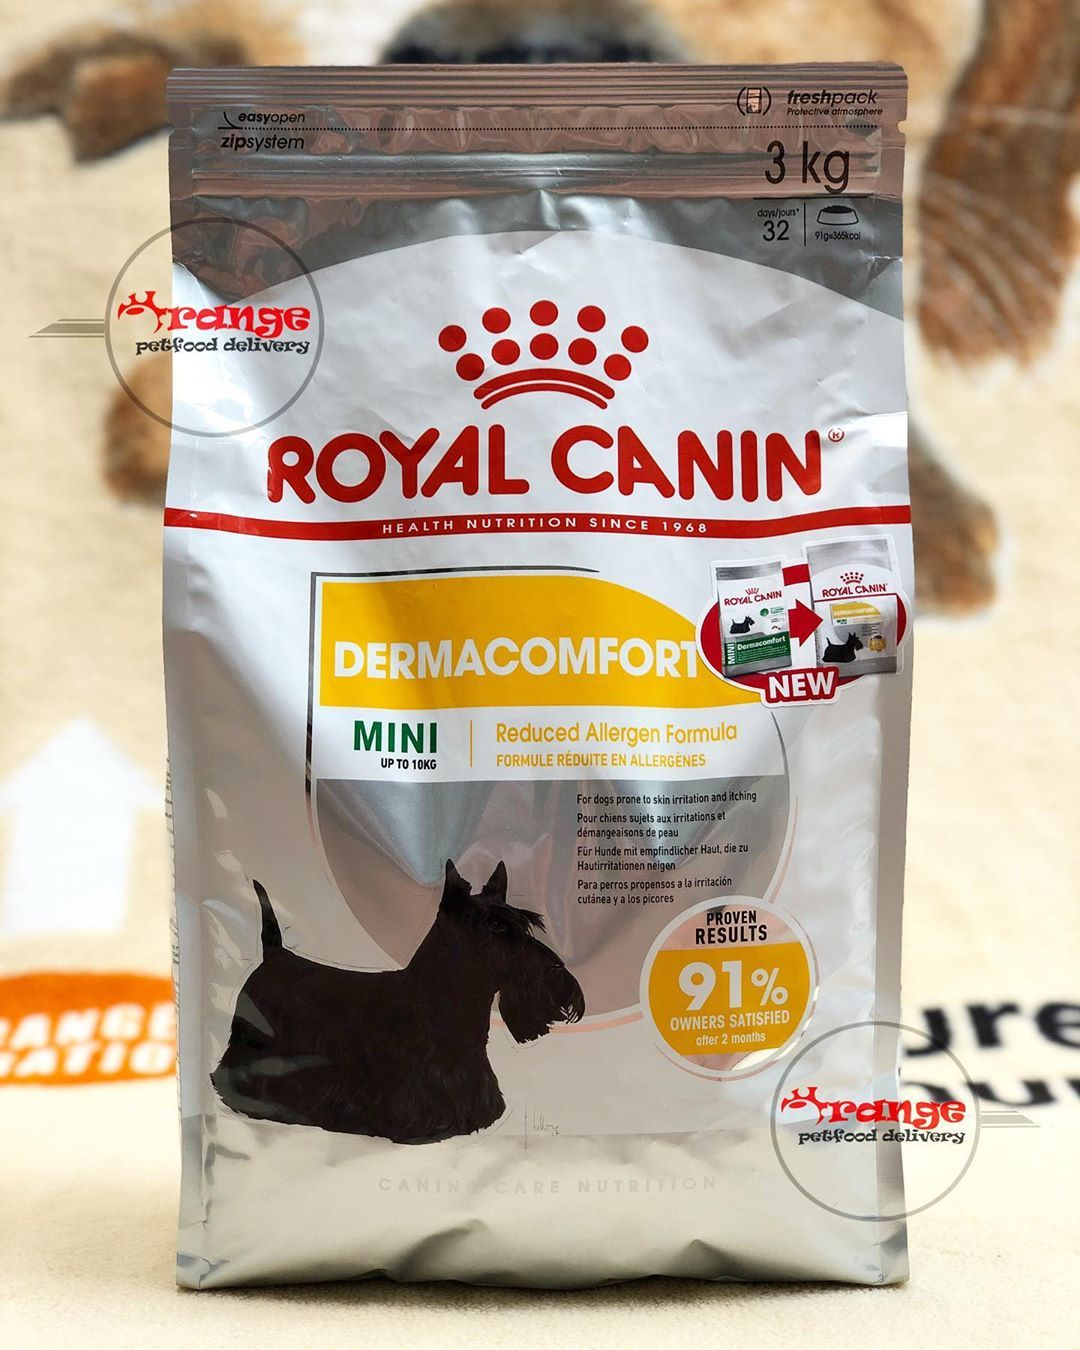 New Packaging Royal Canin Mini Dermacomfort Fresh Pack 3 Kg With Reduced Allergen Formula A Complet Pet Food Delivery Royal Canin Dog Food Dog Food Recipes